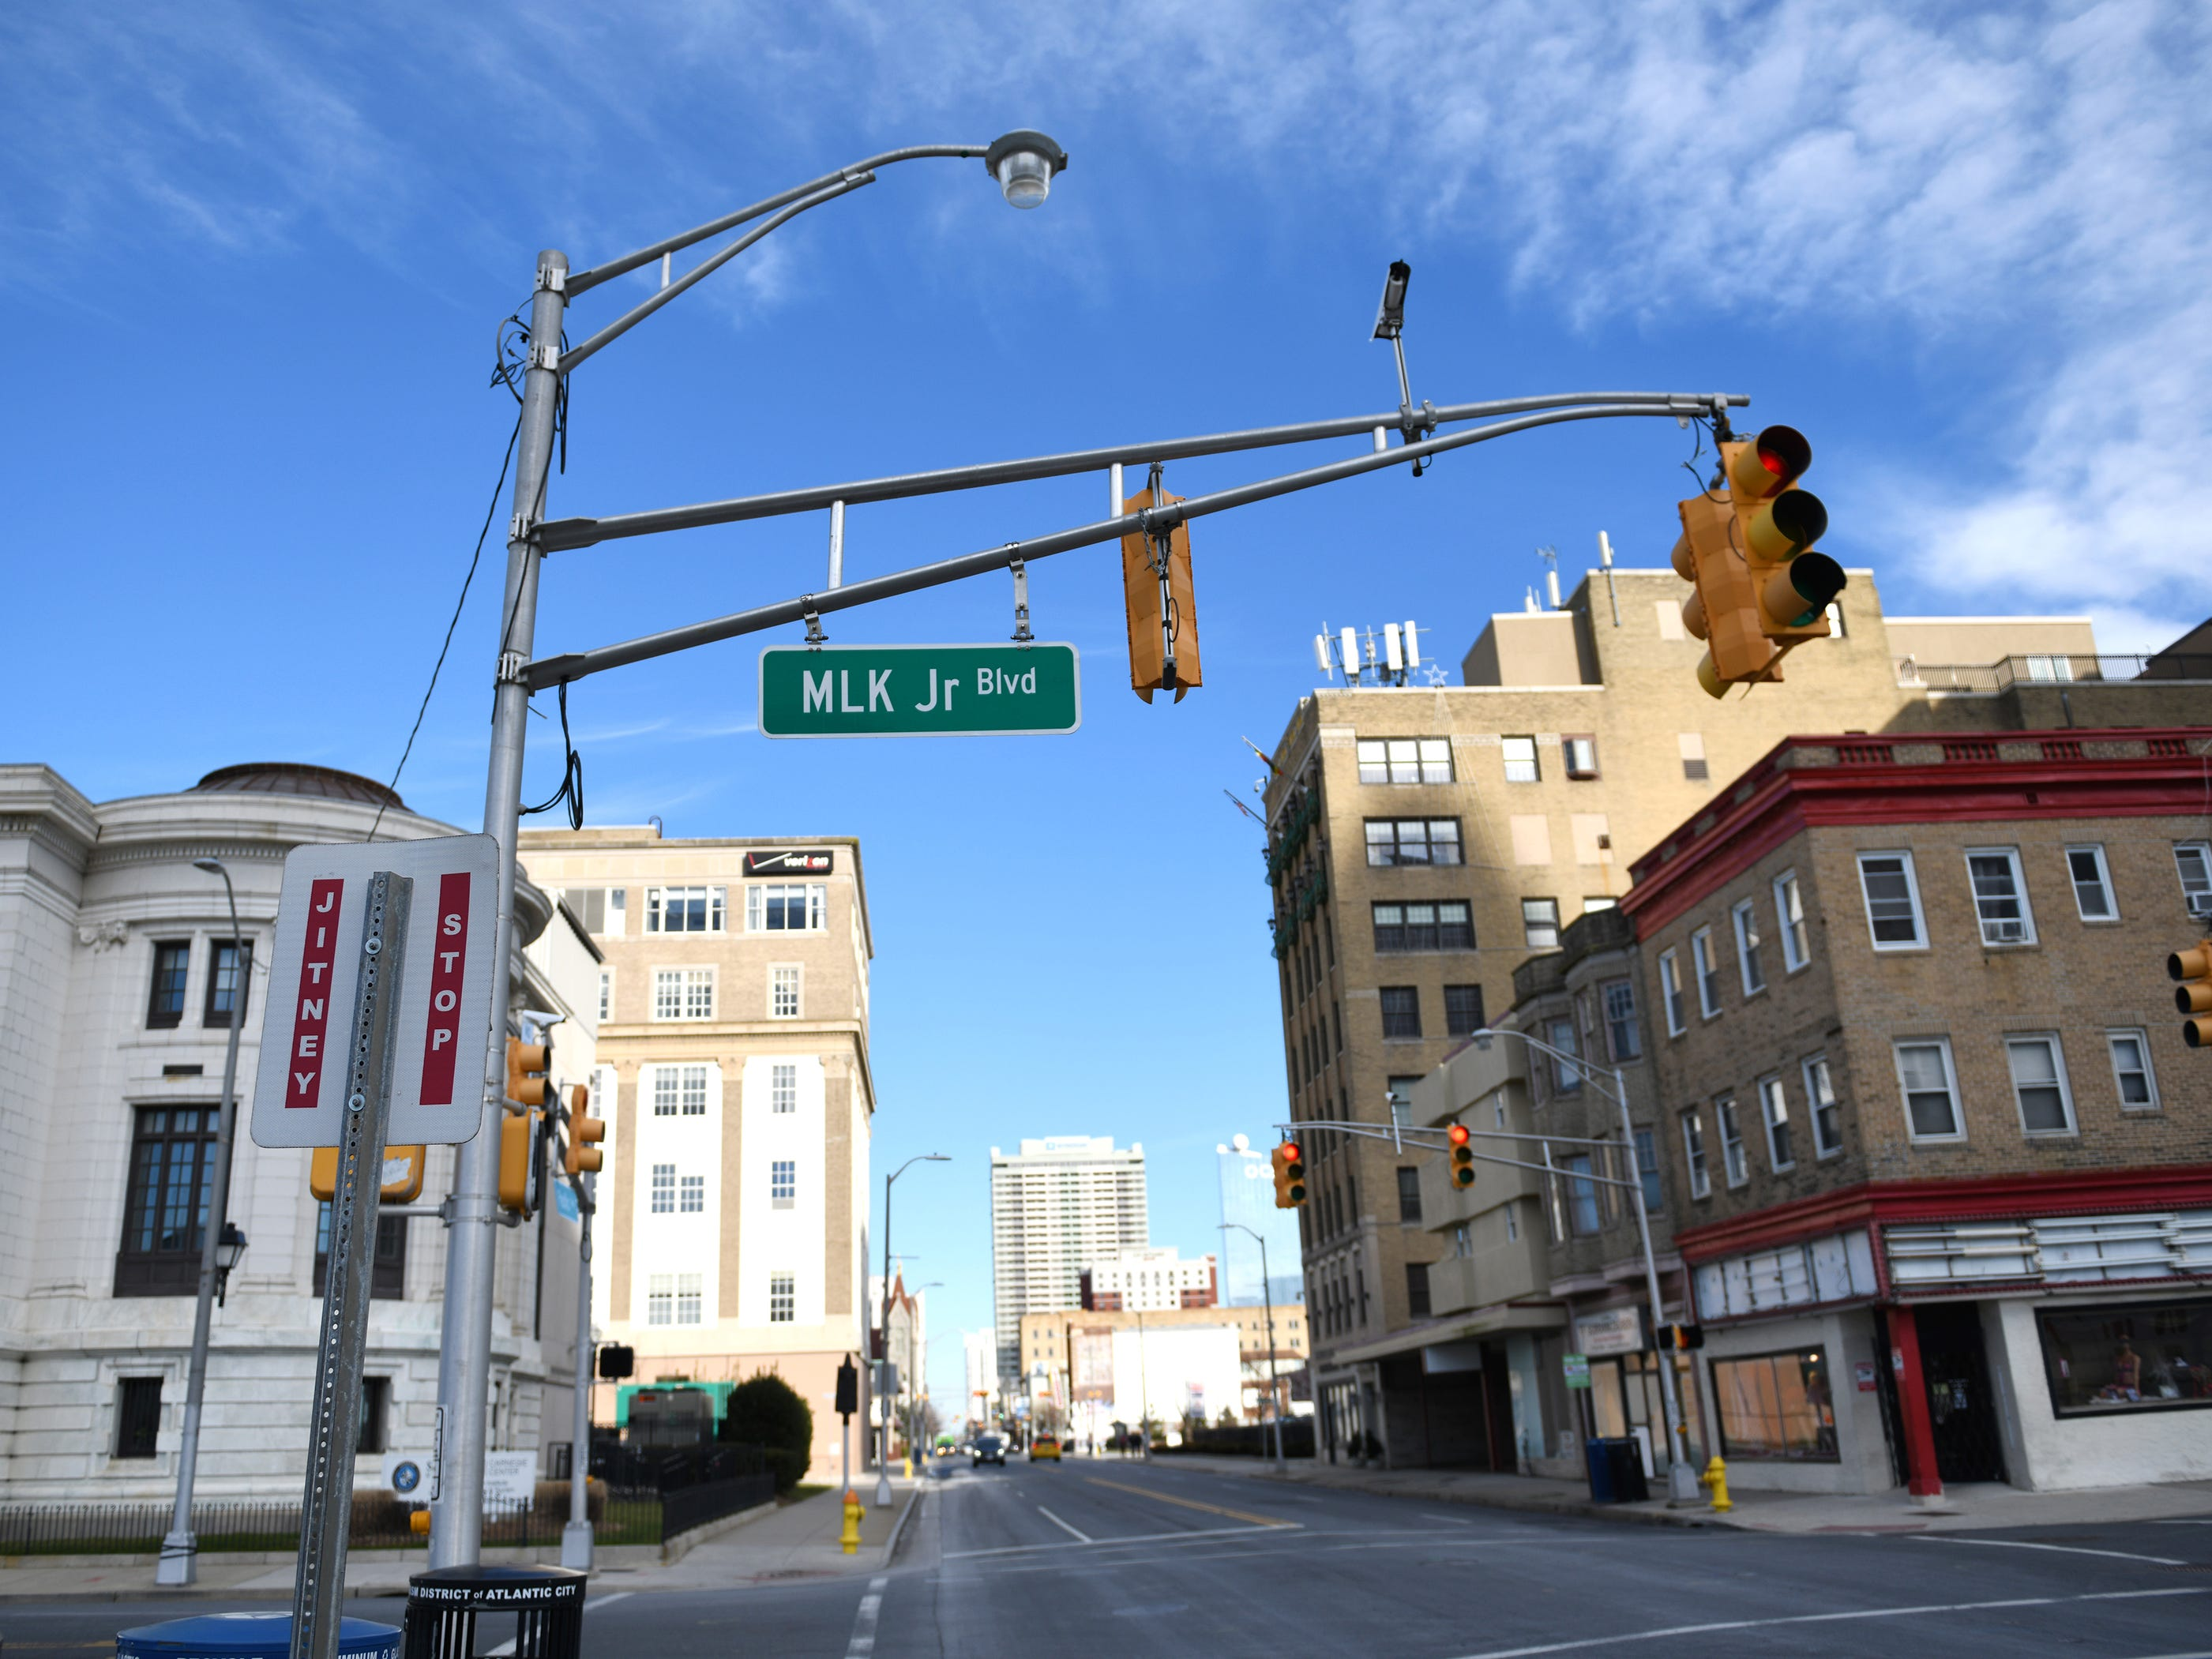 The crosswalk at the corner of Pacific Avenue and Dr. Martin Luther King Jr. Boulevard pictured here in Atlantic City on Friday, Jan. 11, 2019.